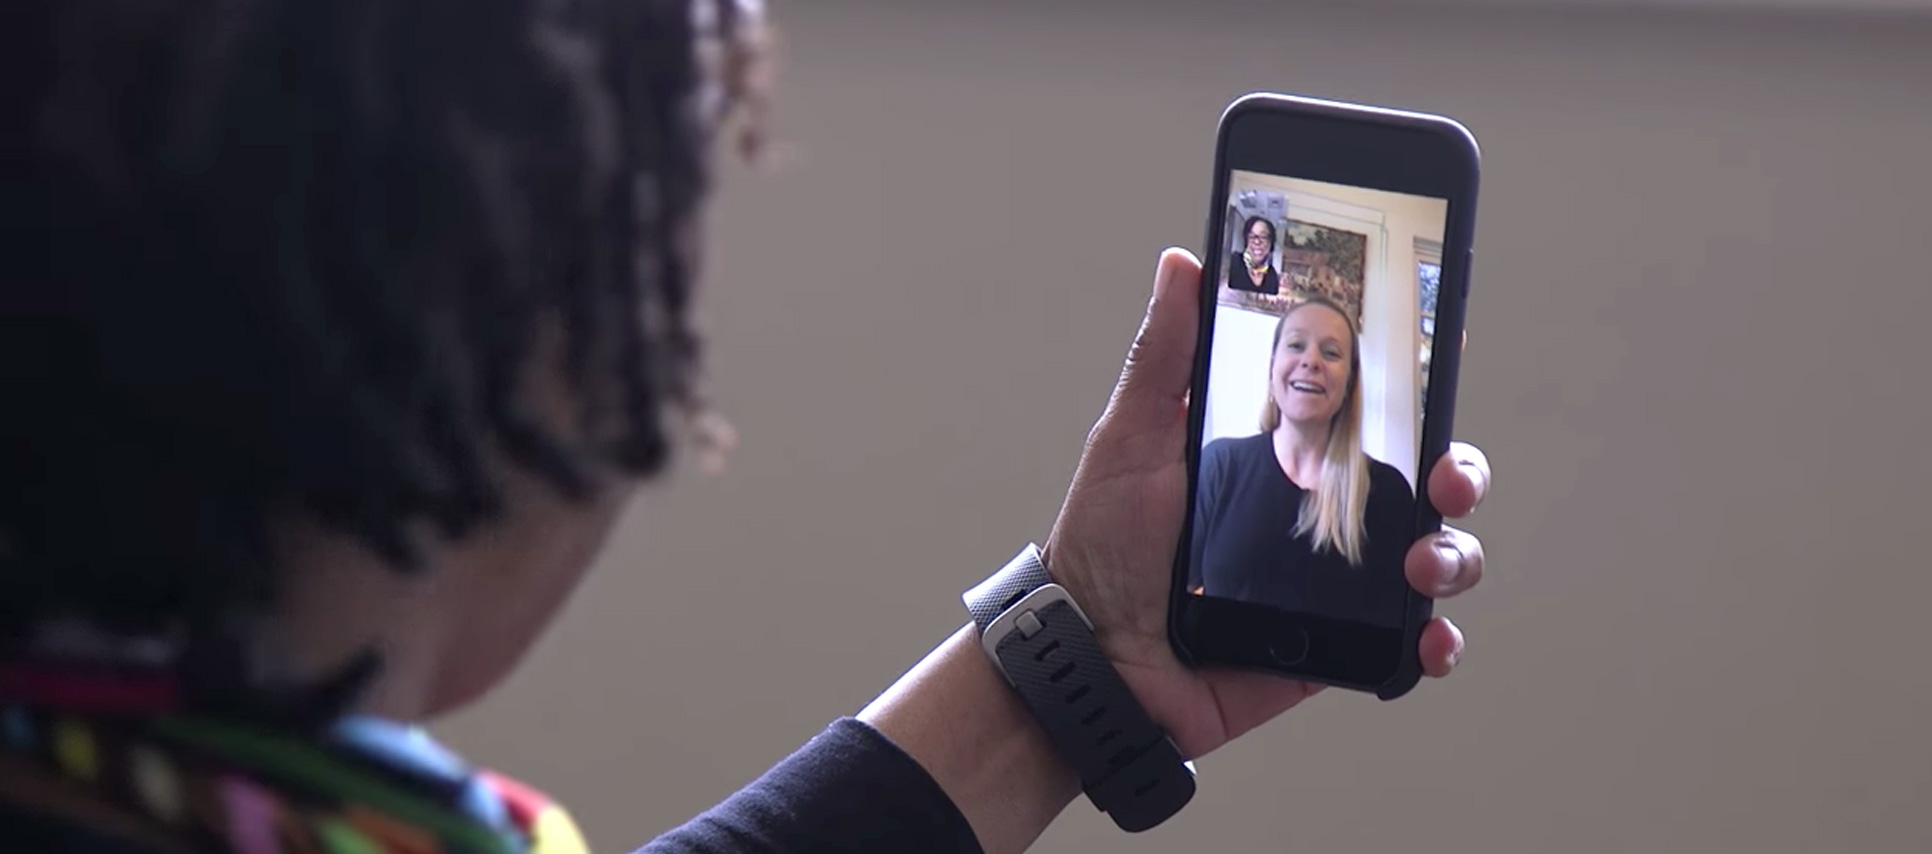 Patient checks in with provider over facetime